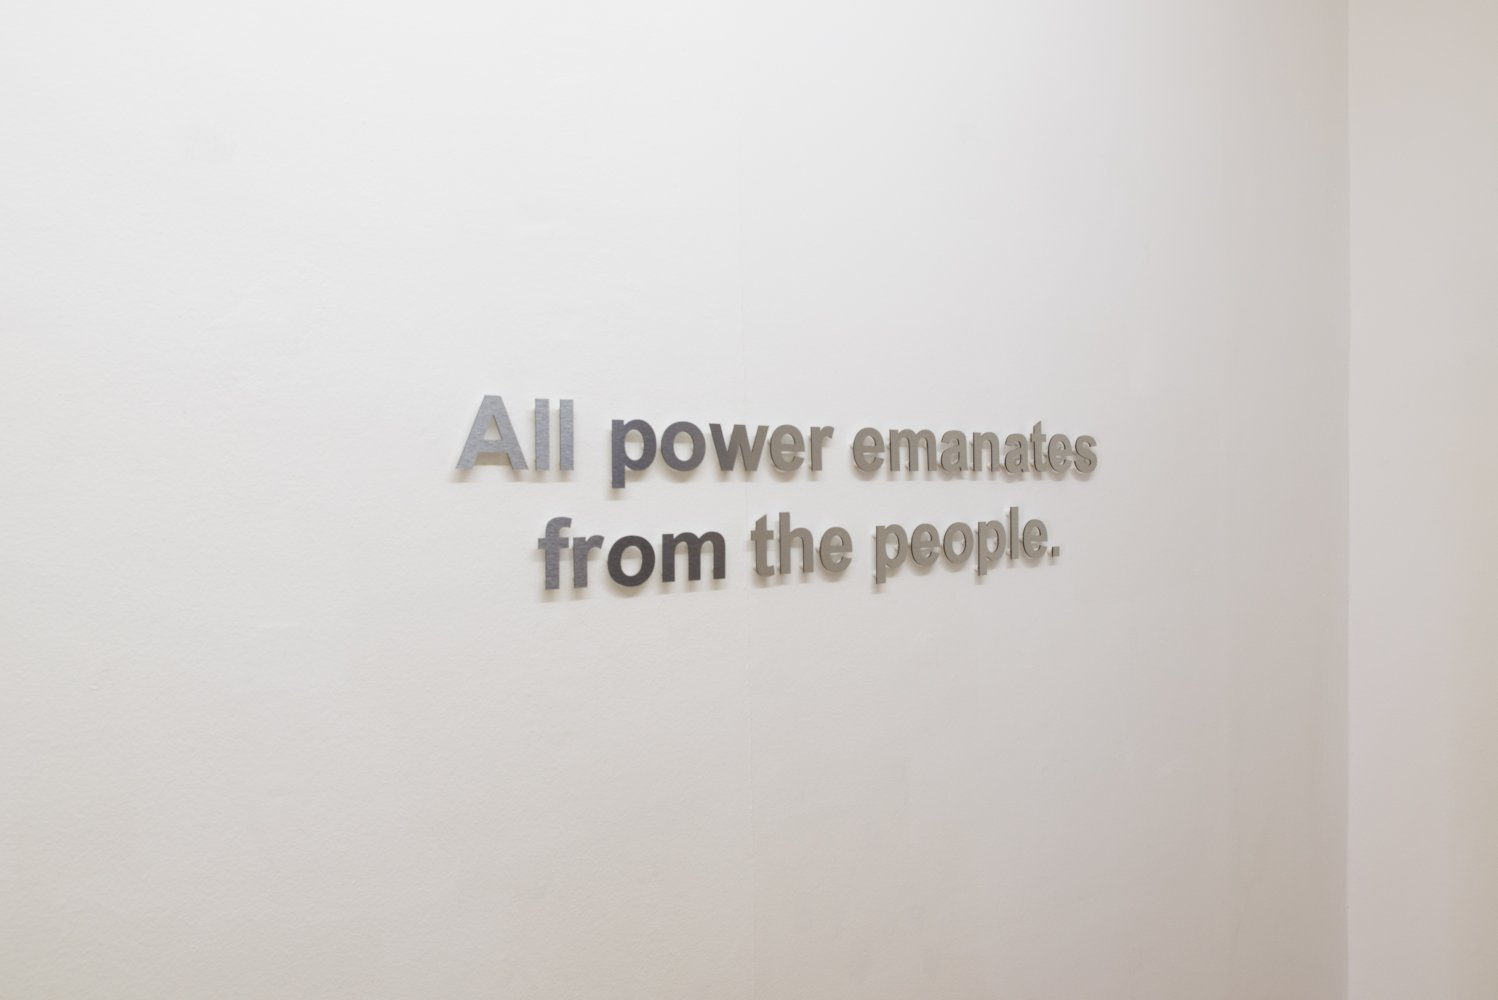 Emily Jones, 'All power emanates from the people' (2015) Install view. Photo by Stefan Lux. Courtesy ANDREAS HUBER